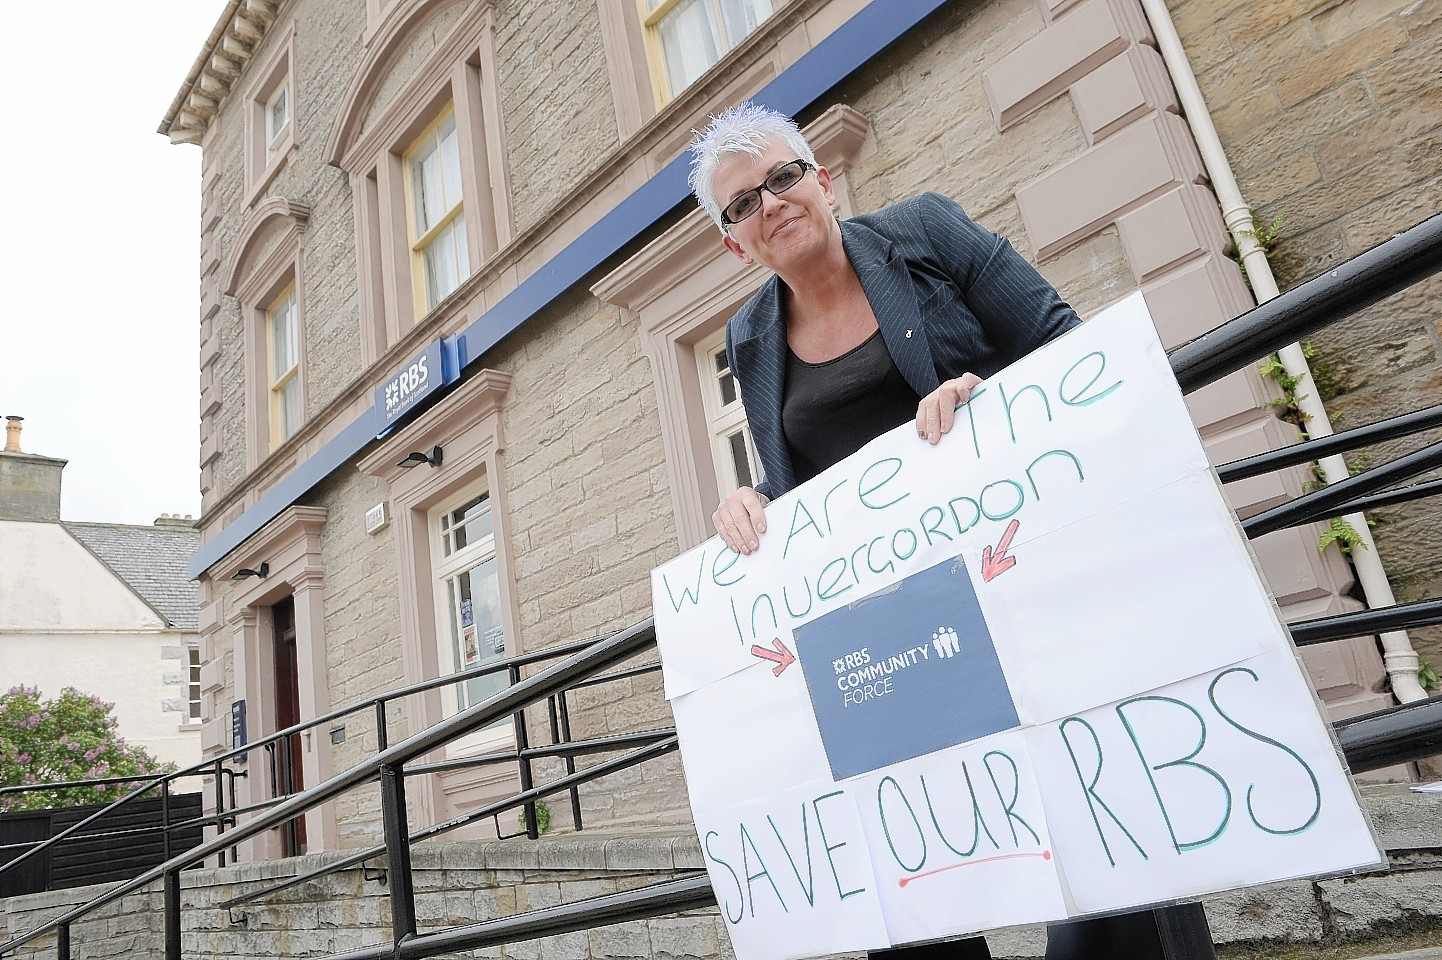 Tina McCaffery of Invergordon who is campaigning for the last bank in the town